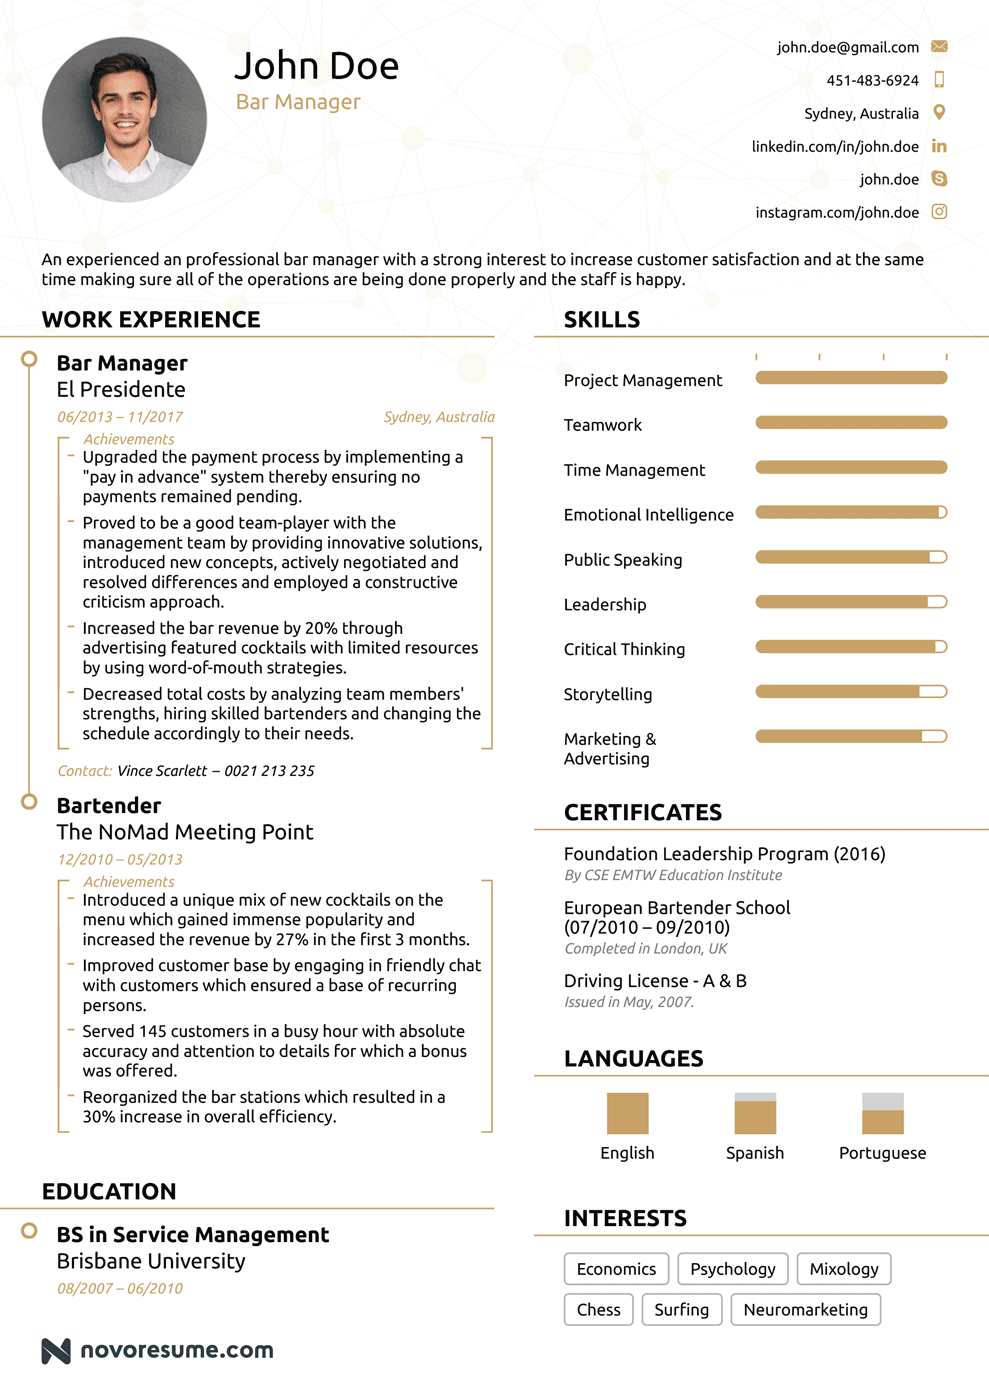 Professional Or Executive Resume Whats The Difference >> Bar Restaurant Manager Resume Example Update Yours For 2019